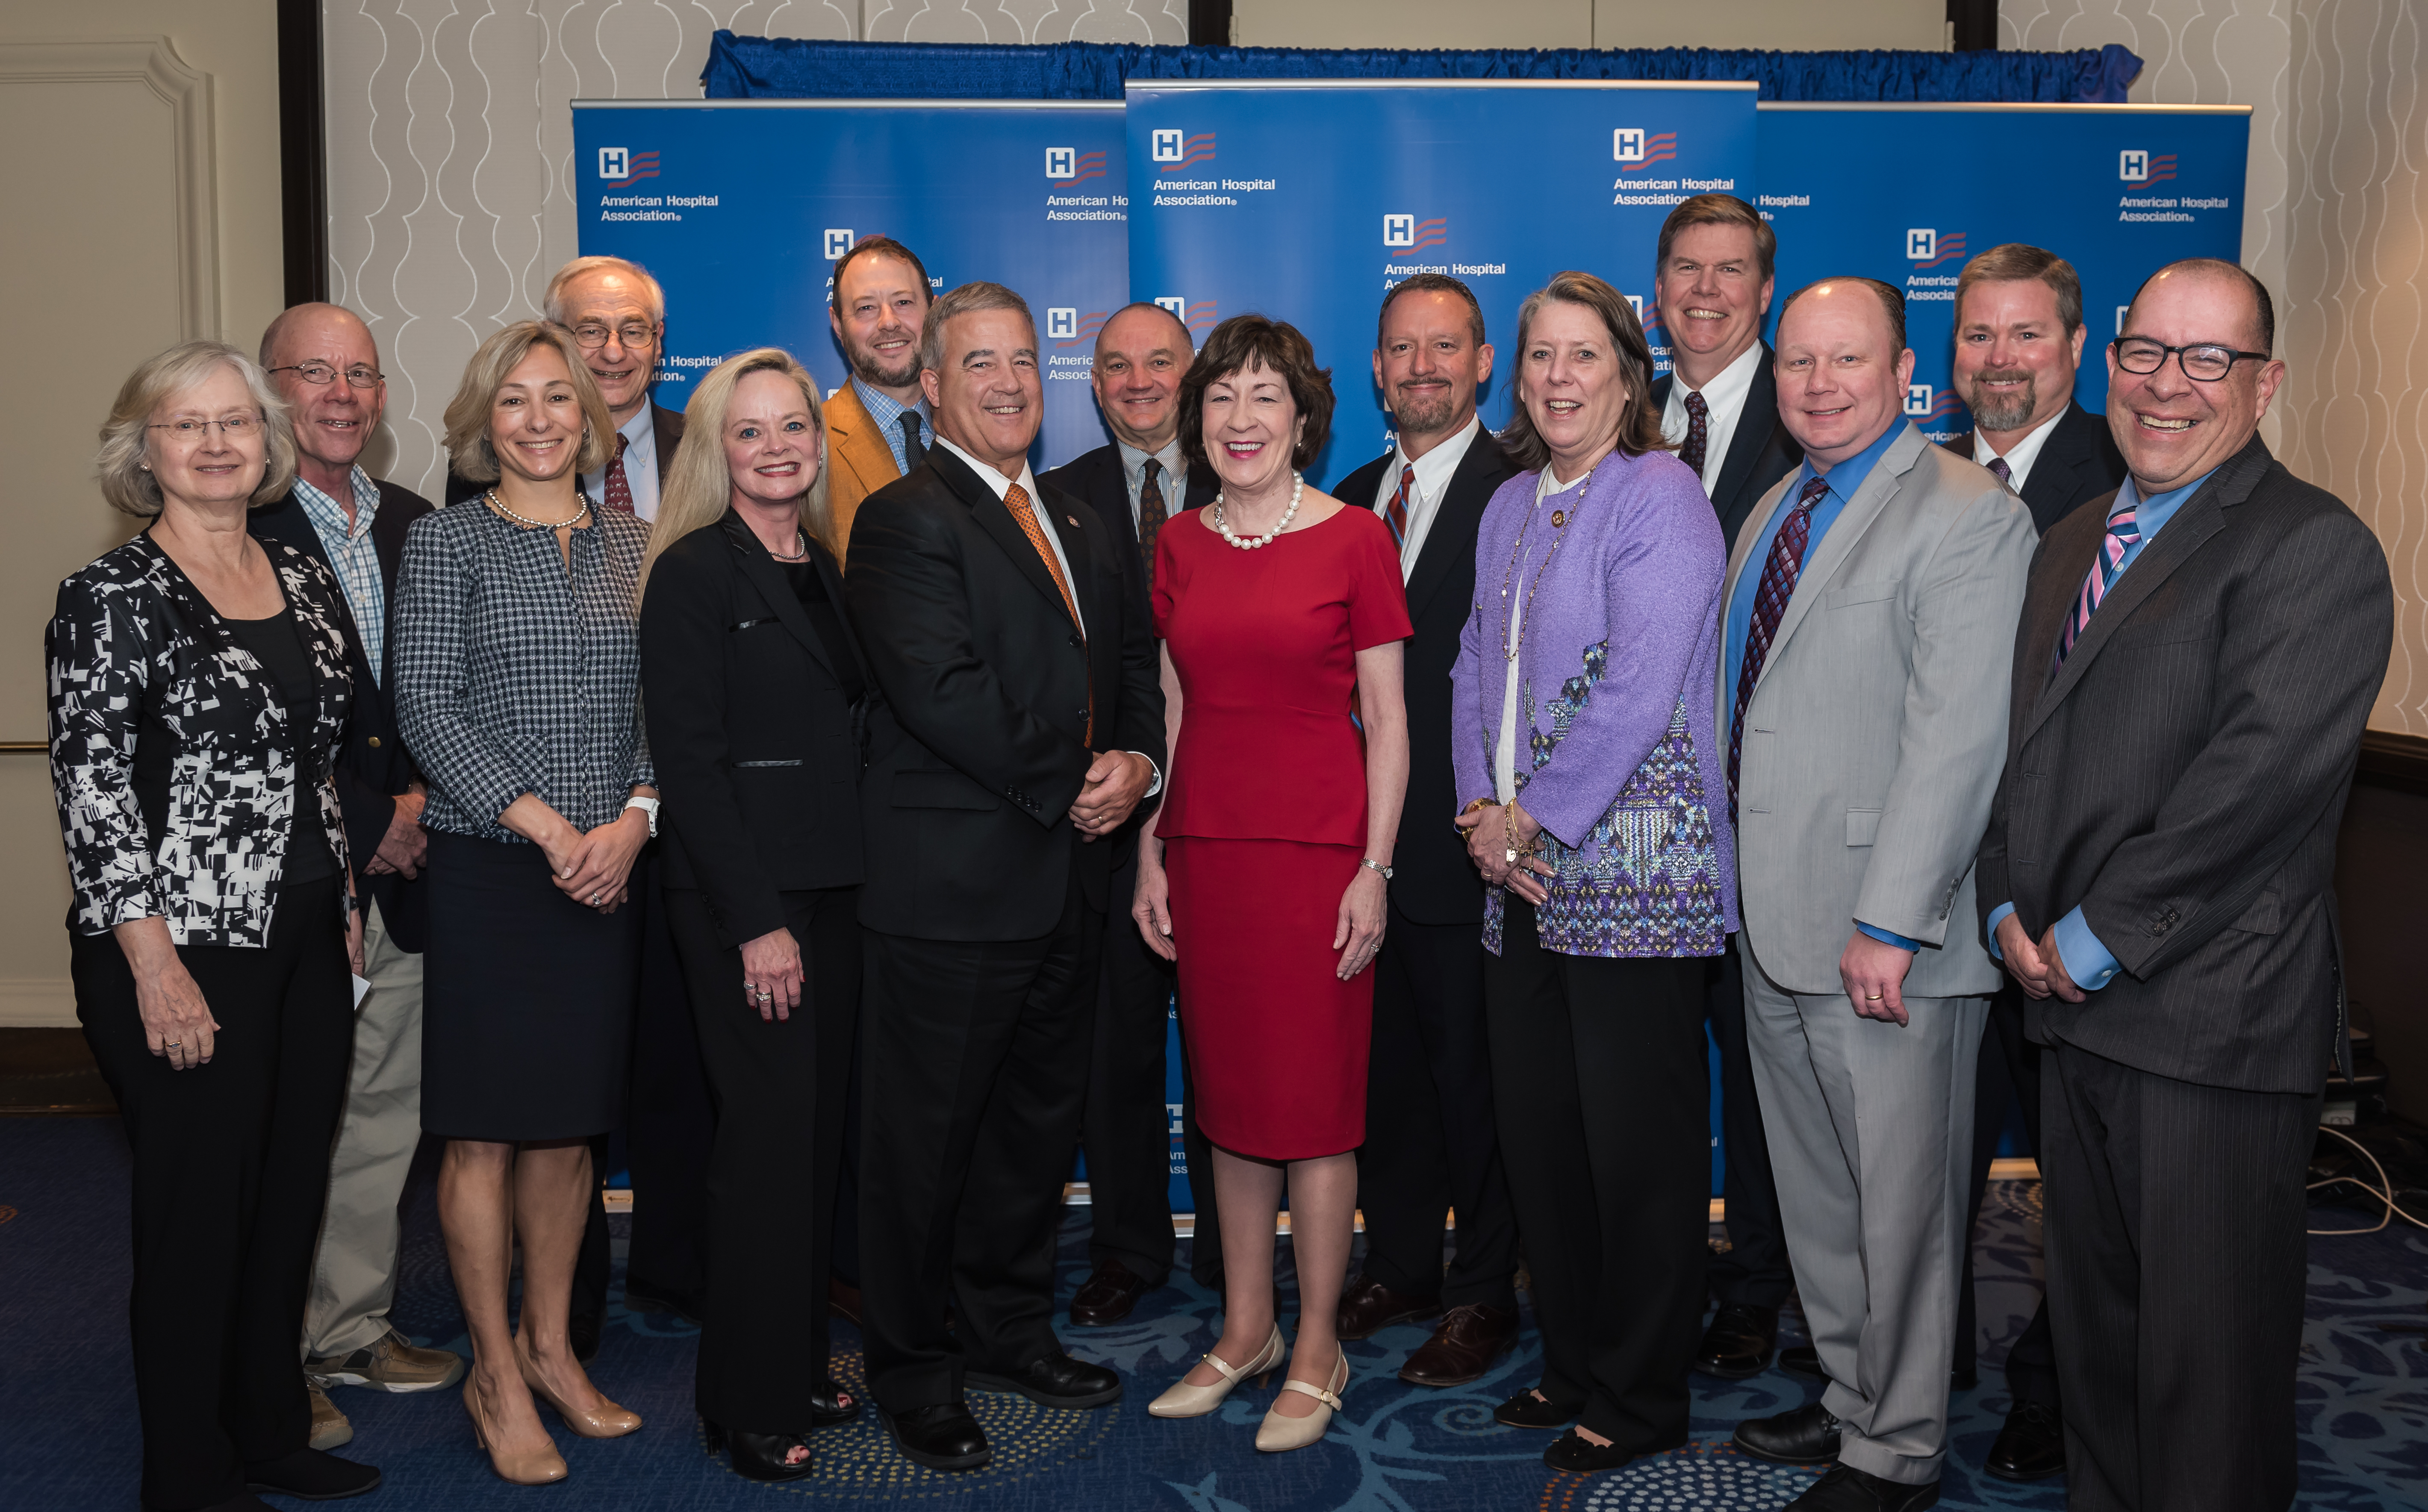 Susan-Collins-AHA-annual-meeting-group.JPG